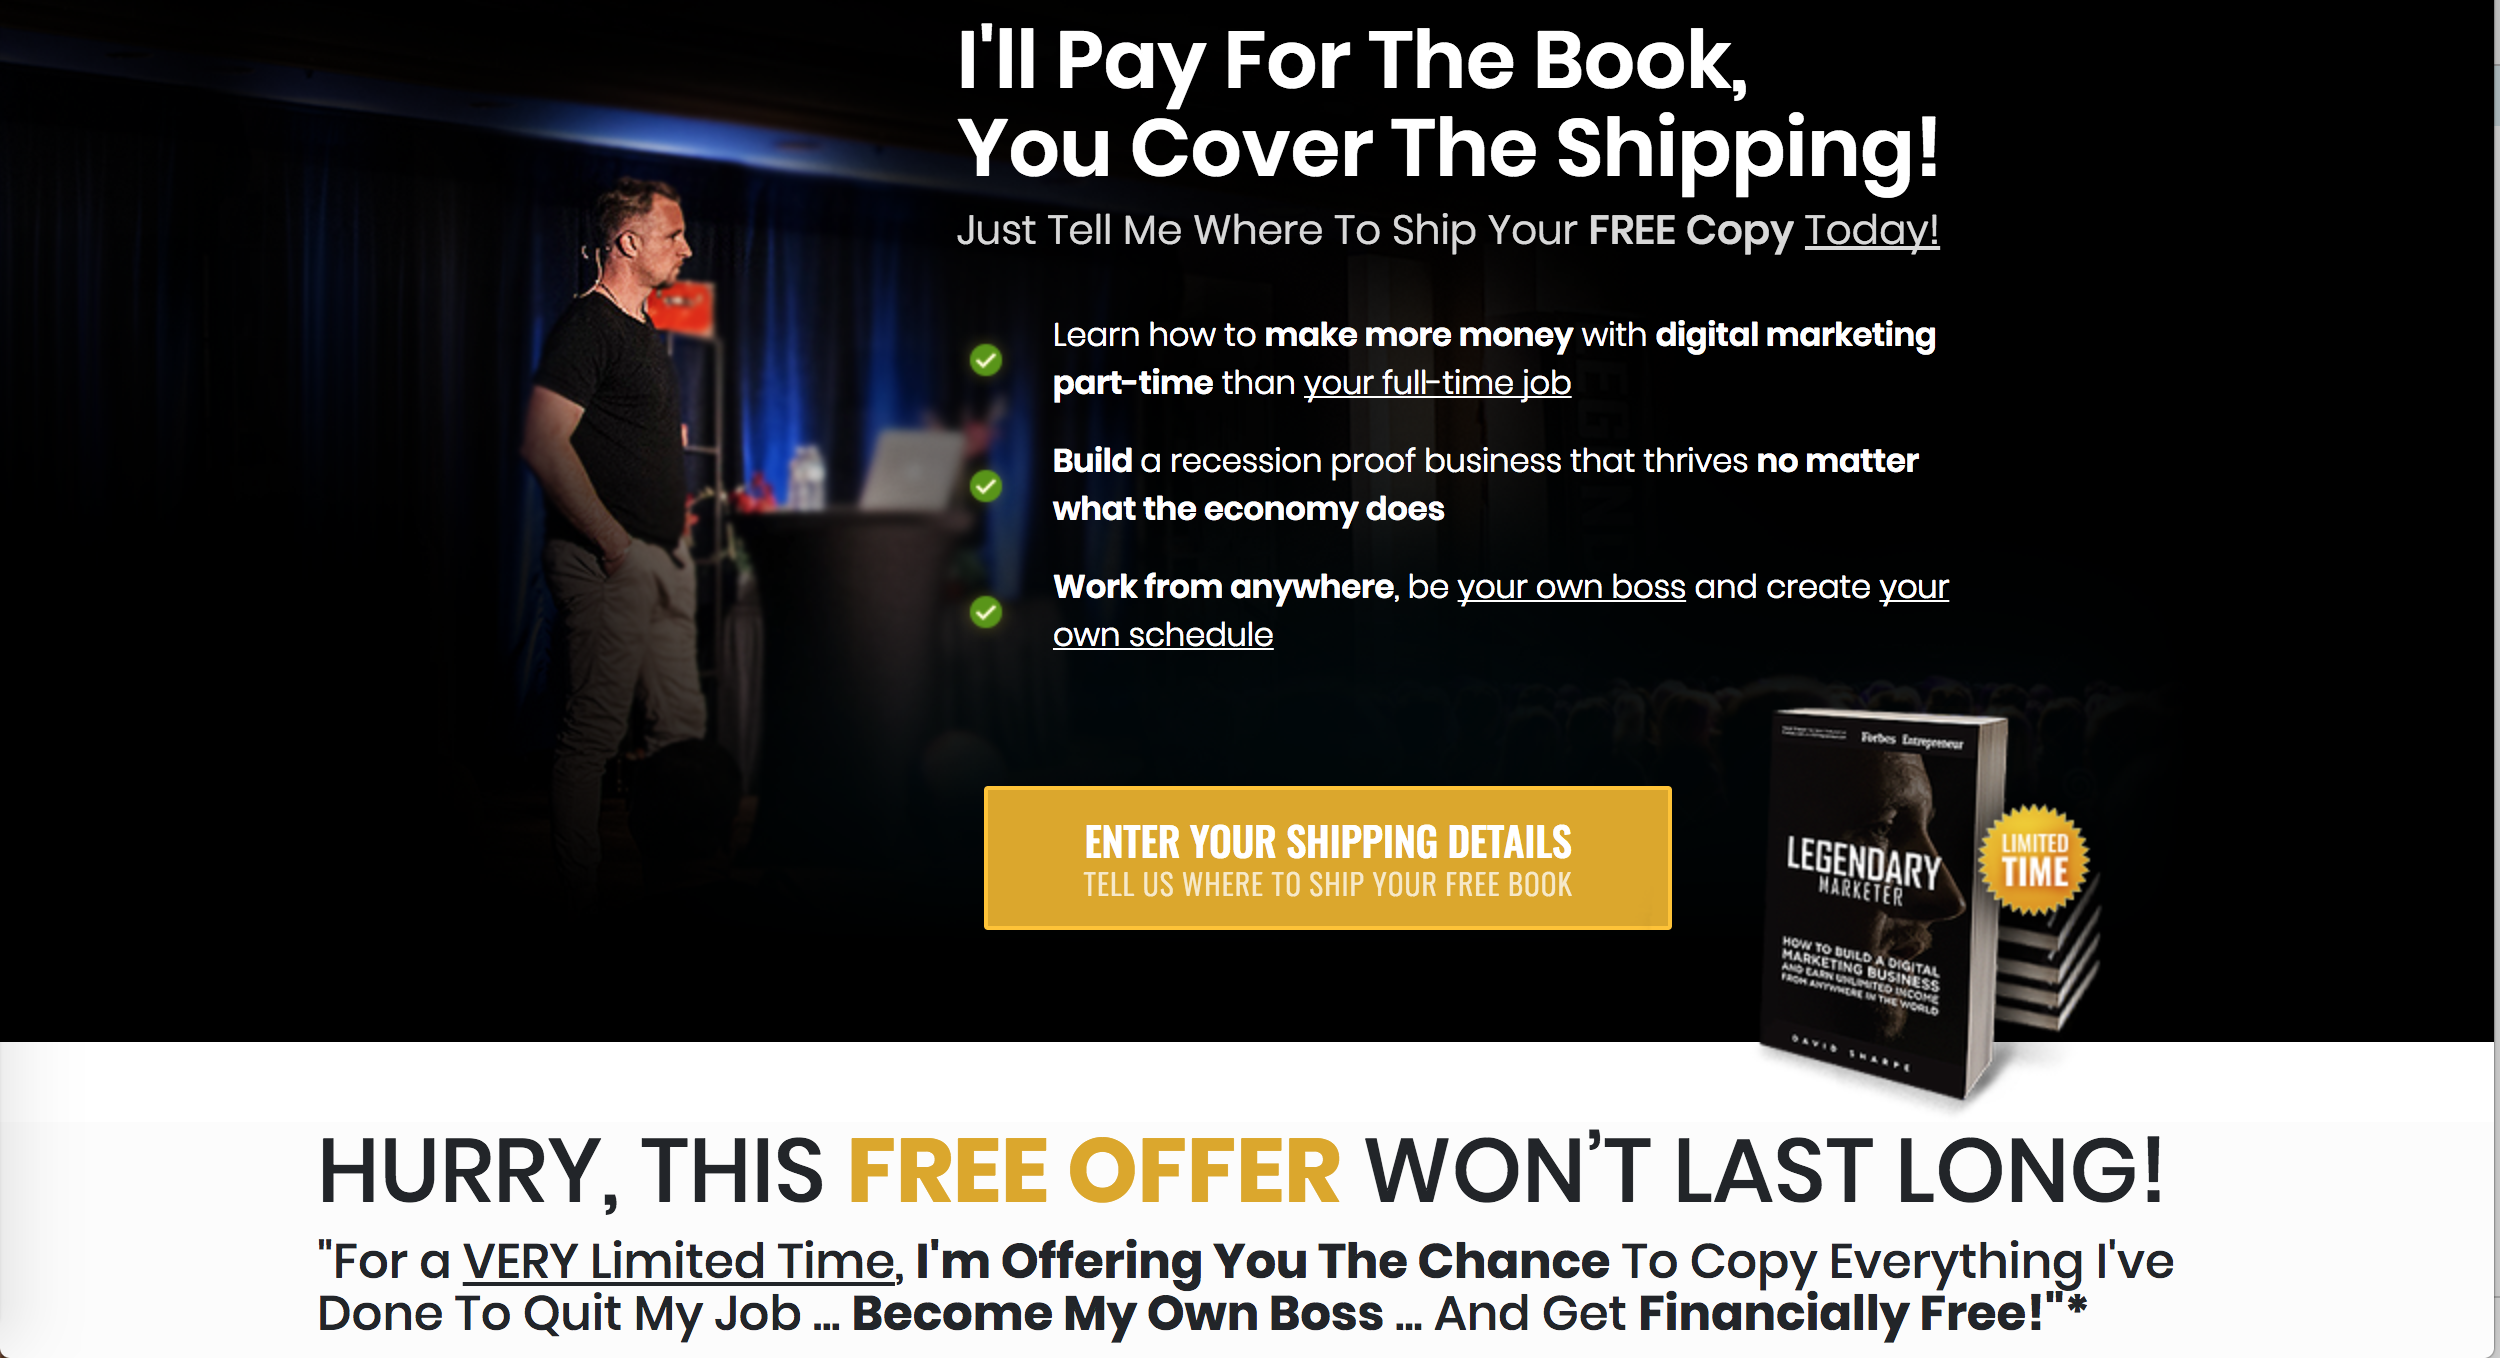 Buy  Legendary Marketer Internet Marketing Program For Under 200